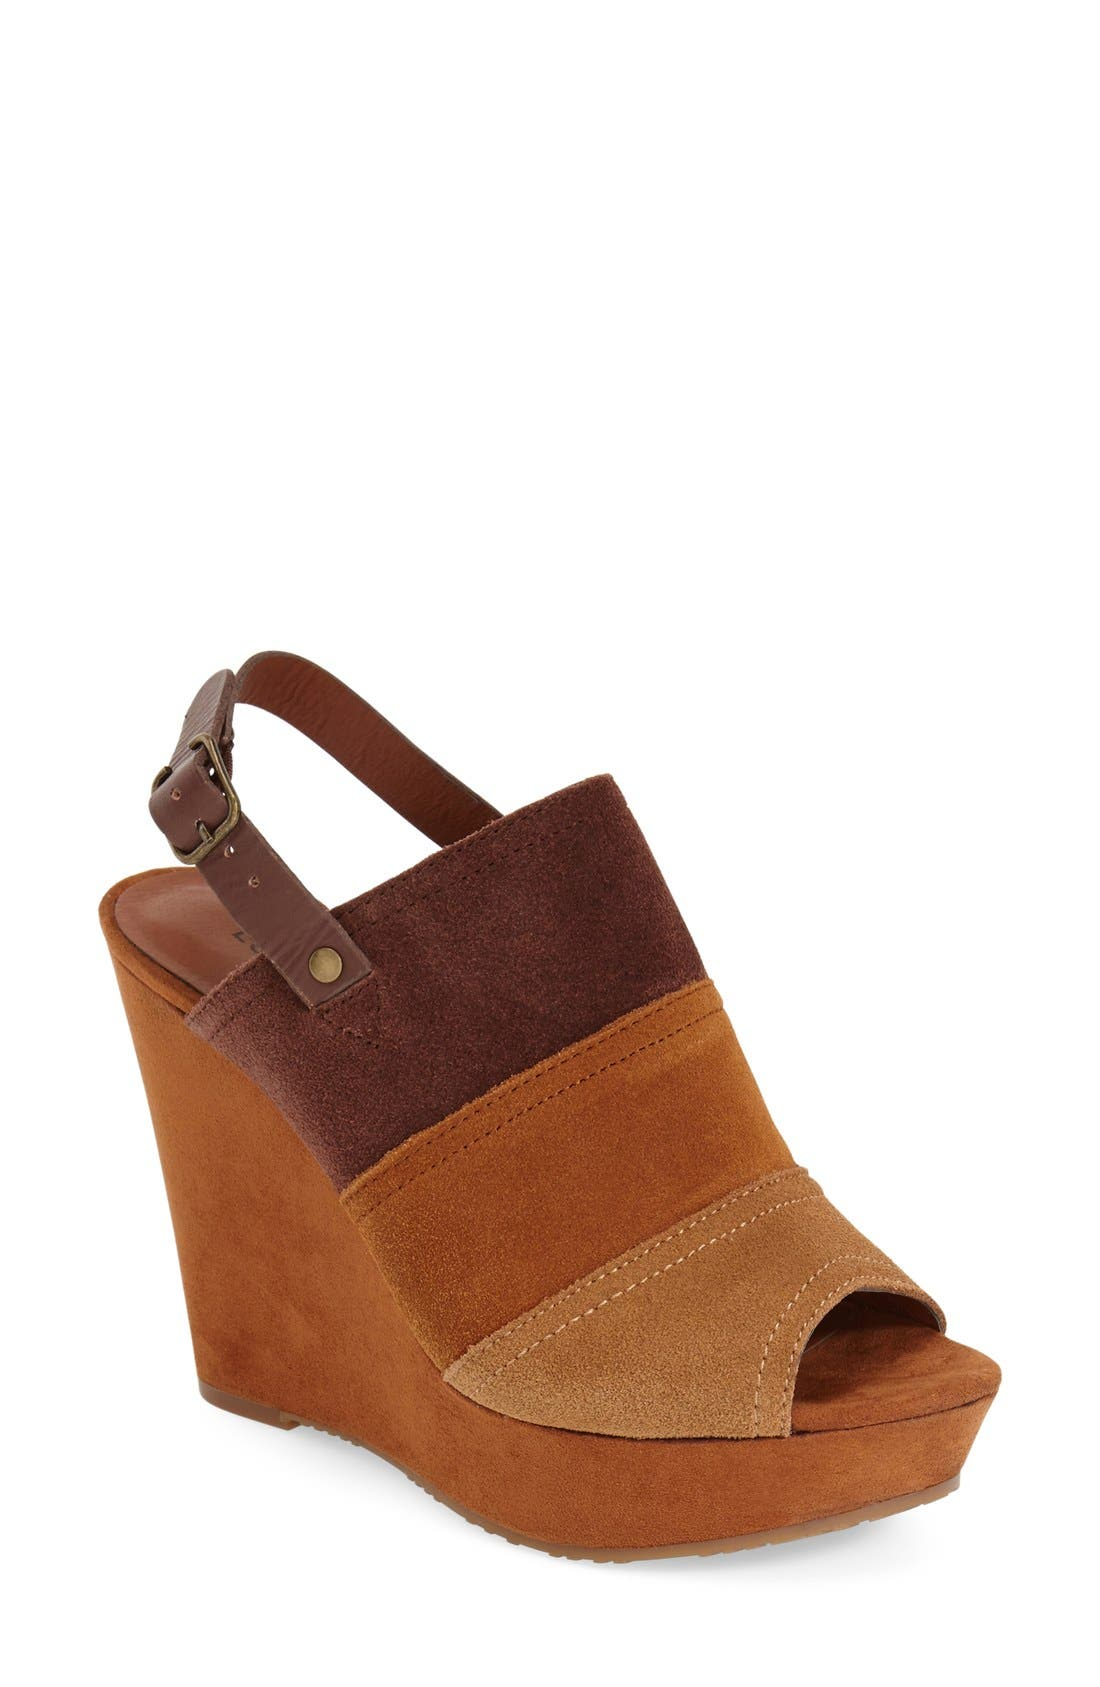 Alternate Image 1 Selected - Lucky Brand 'Frescala' Wedge Sandal (Women)